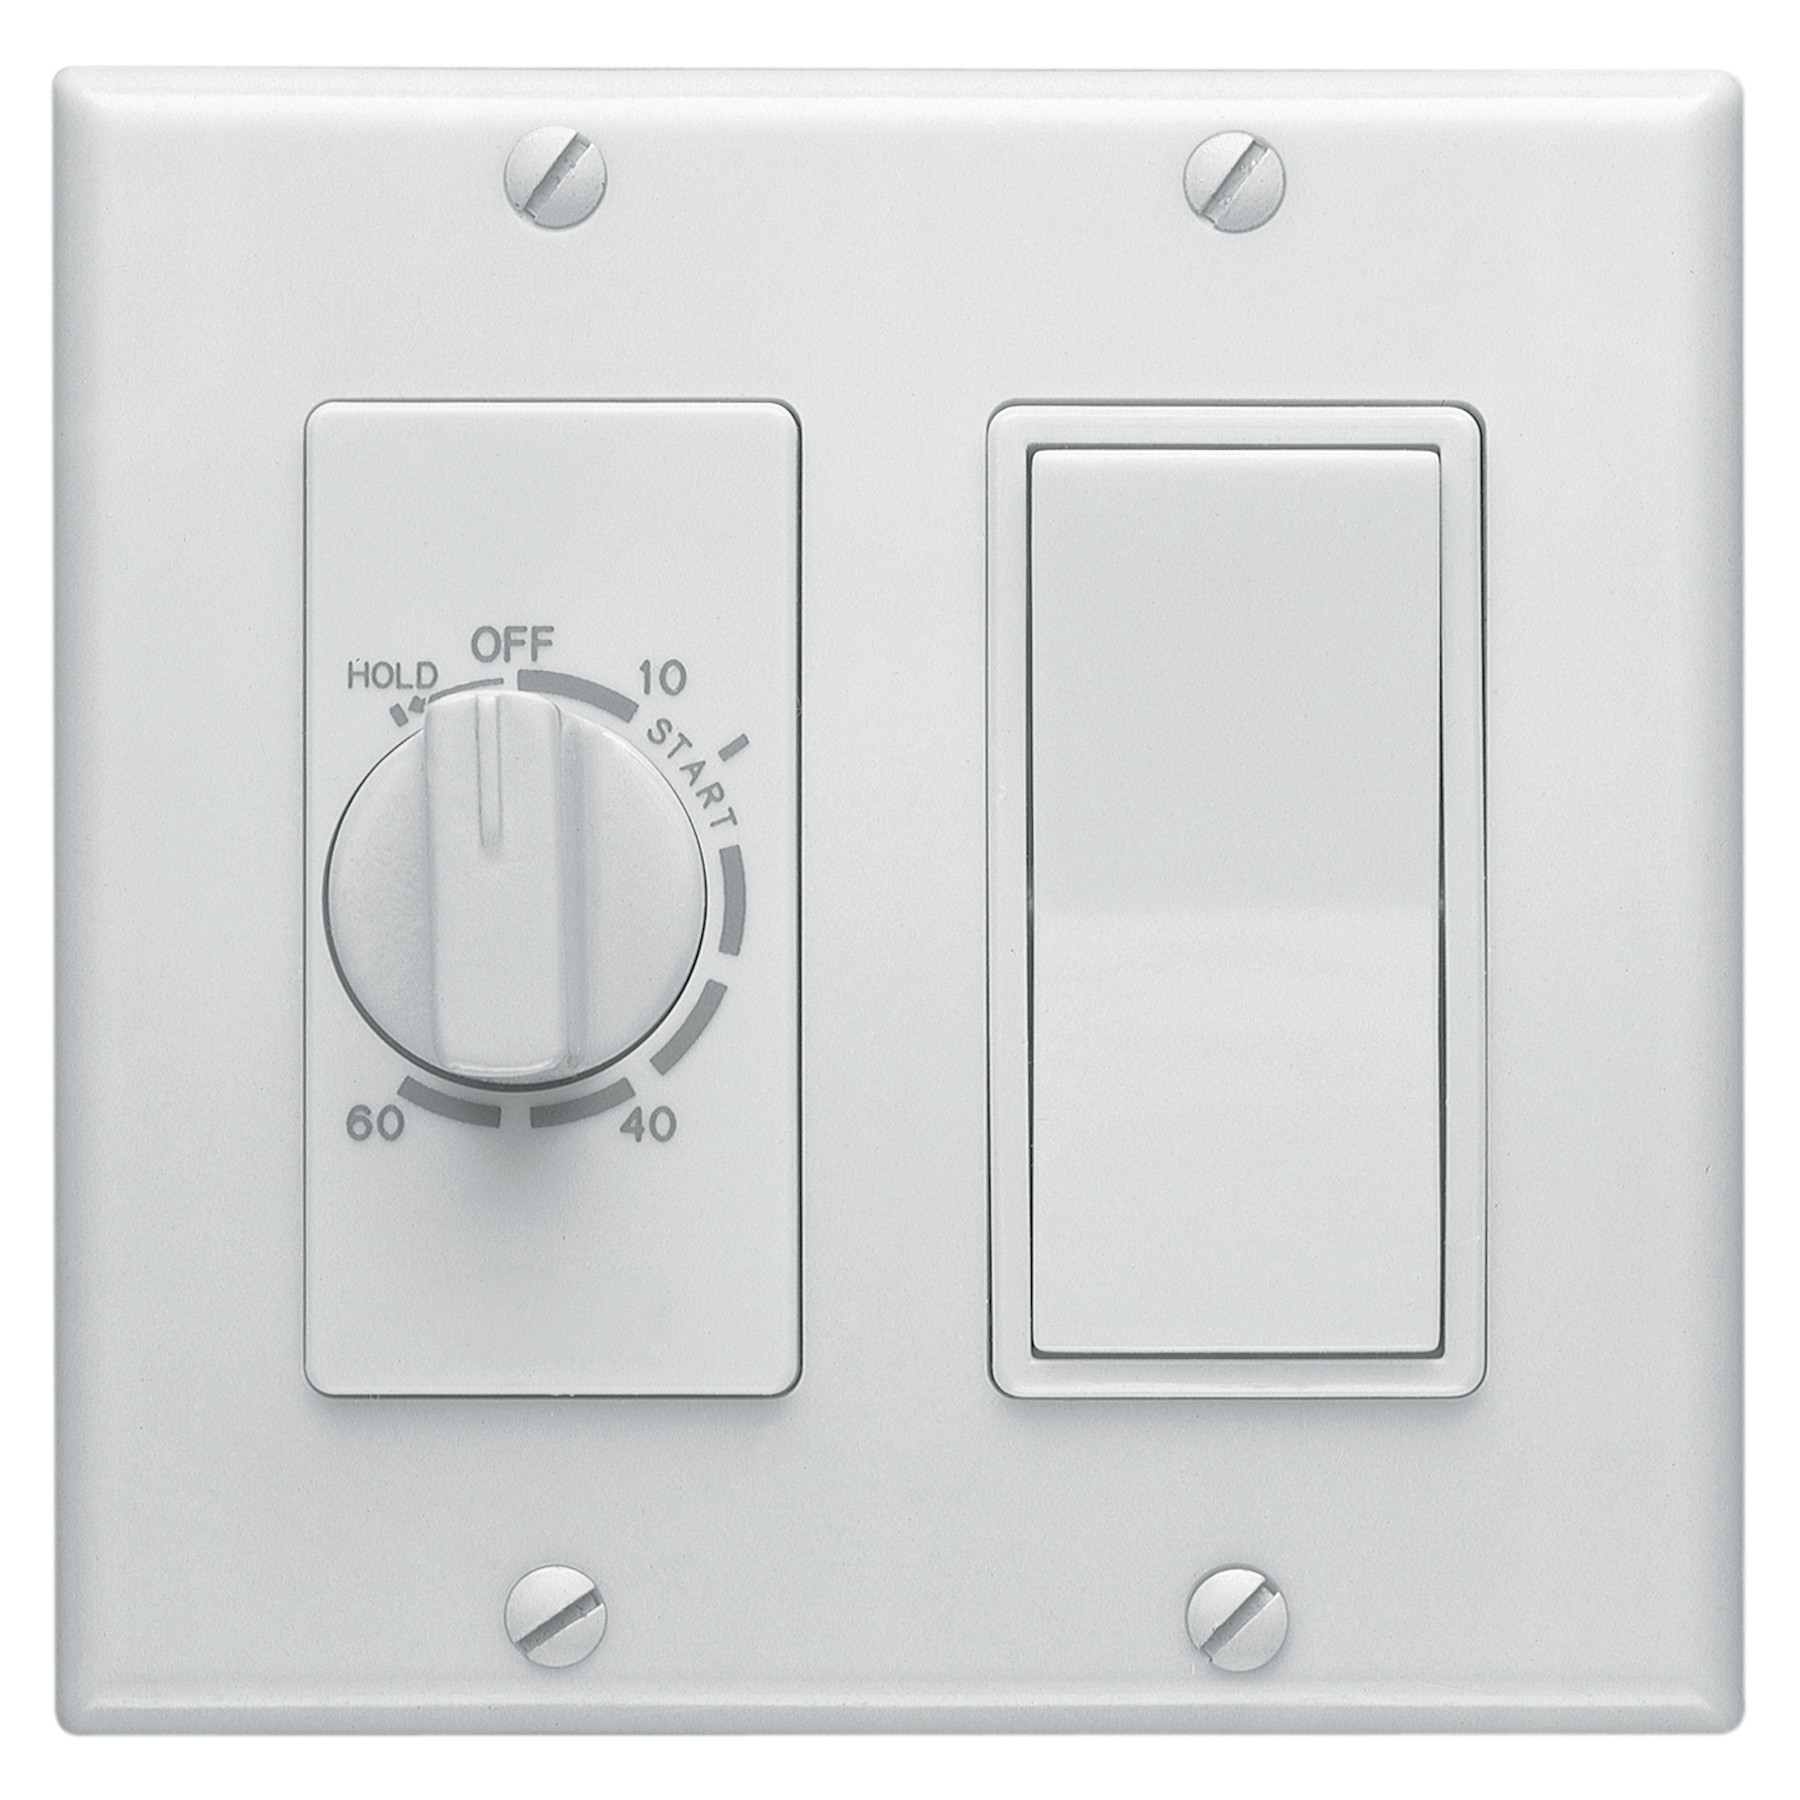 Broan-NuTone® 60-Minute Time Control w/ 1-Rocker Switch, White